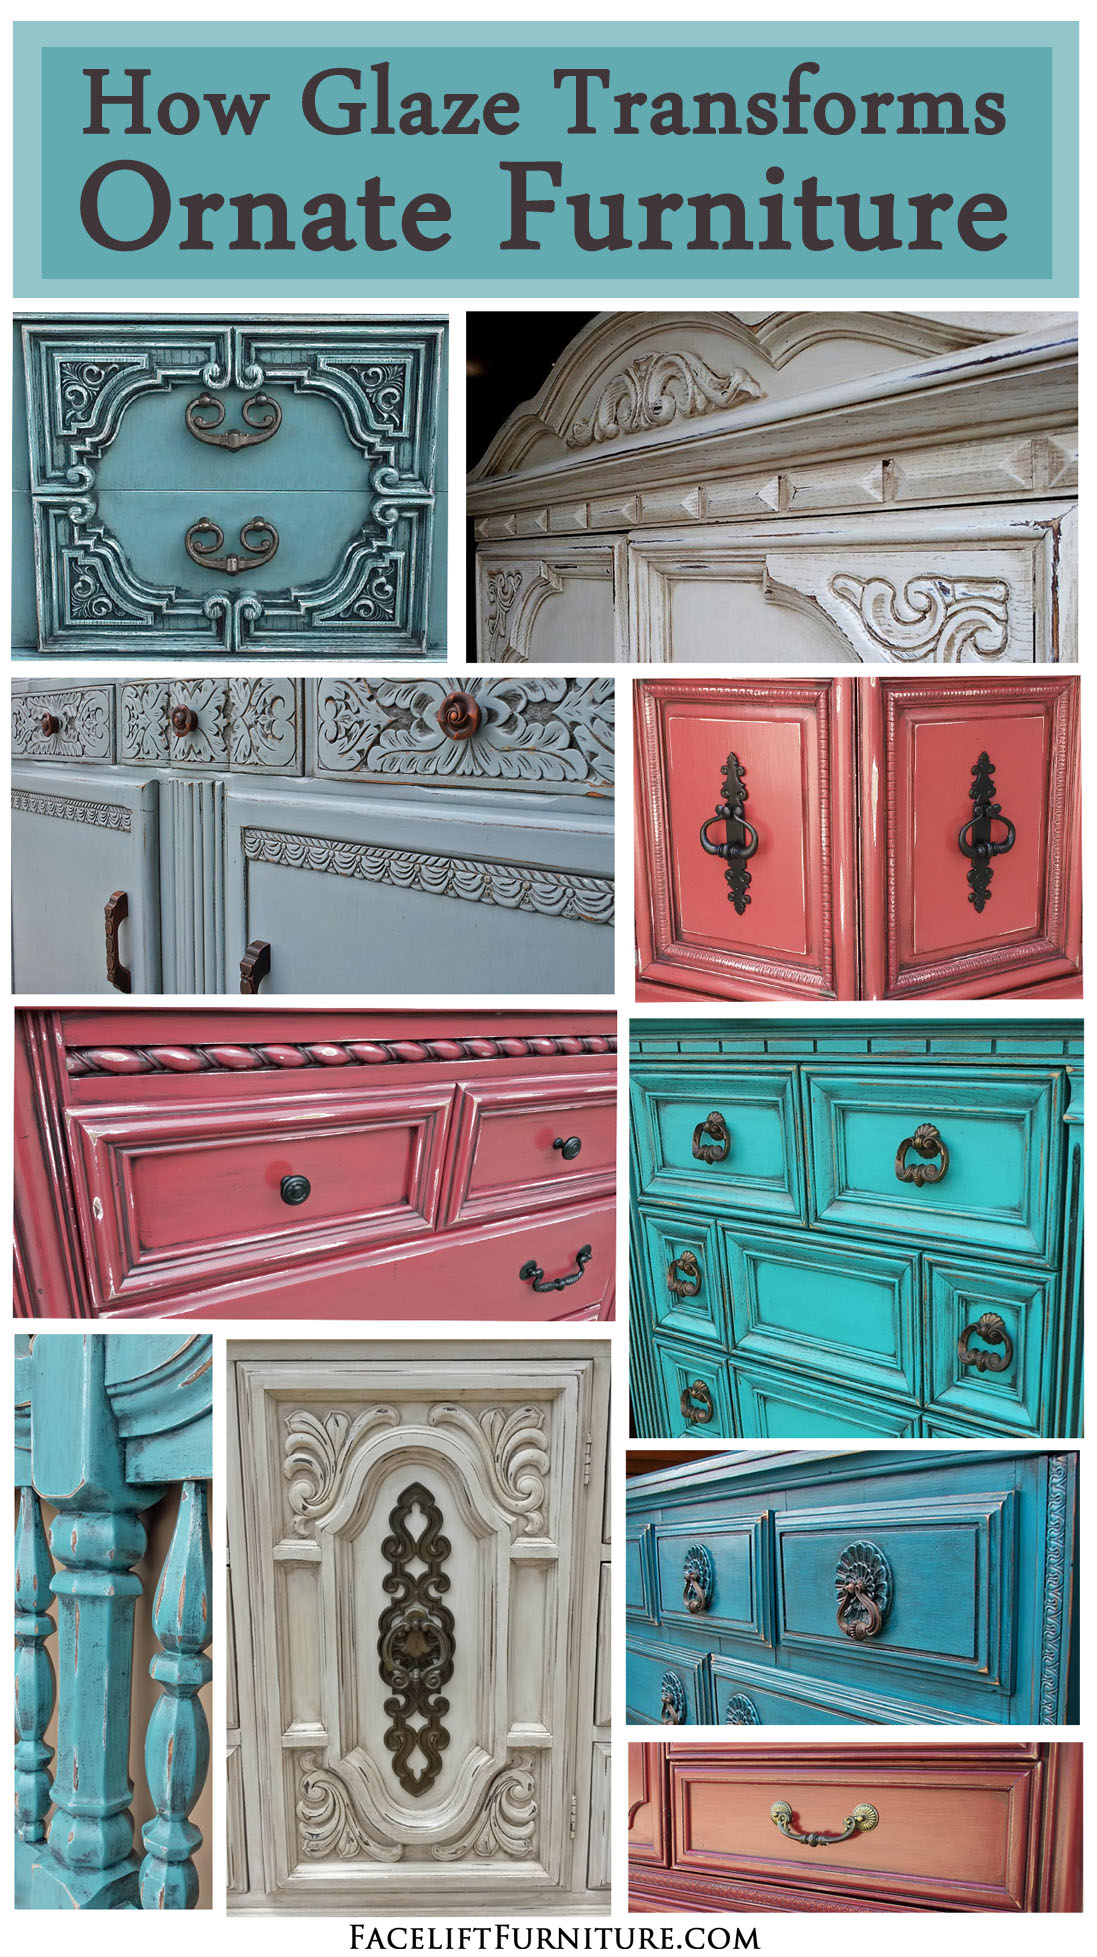 How Glaze Transforms Ornate Furniture ~ Facelift Furniture   http://www.faceliftfurniture.com/glaze-transforms-ornate-furniture/